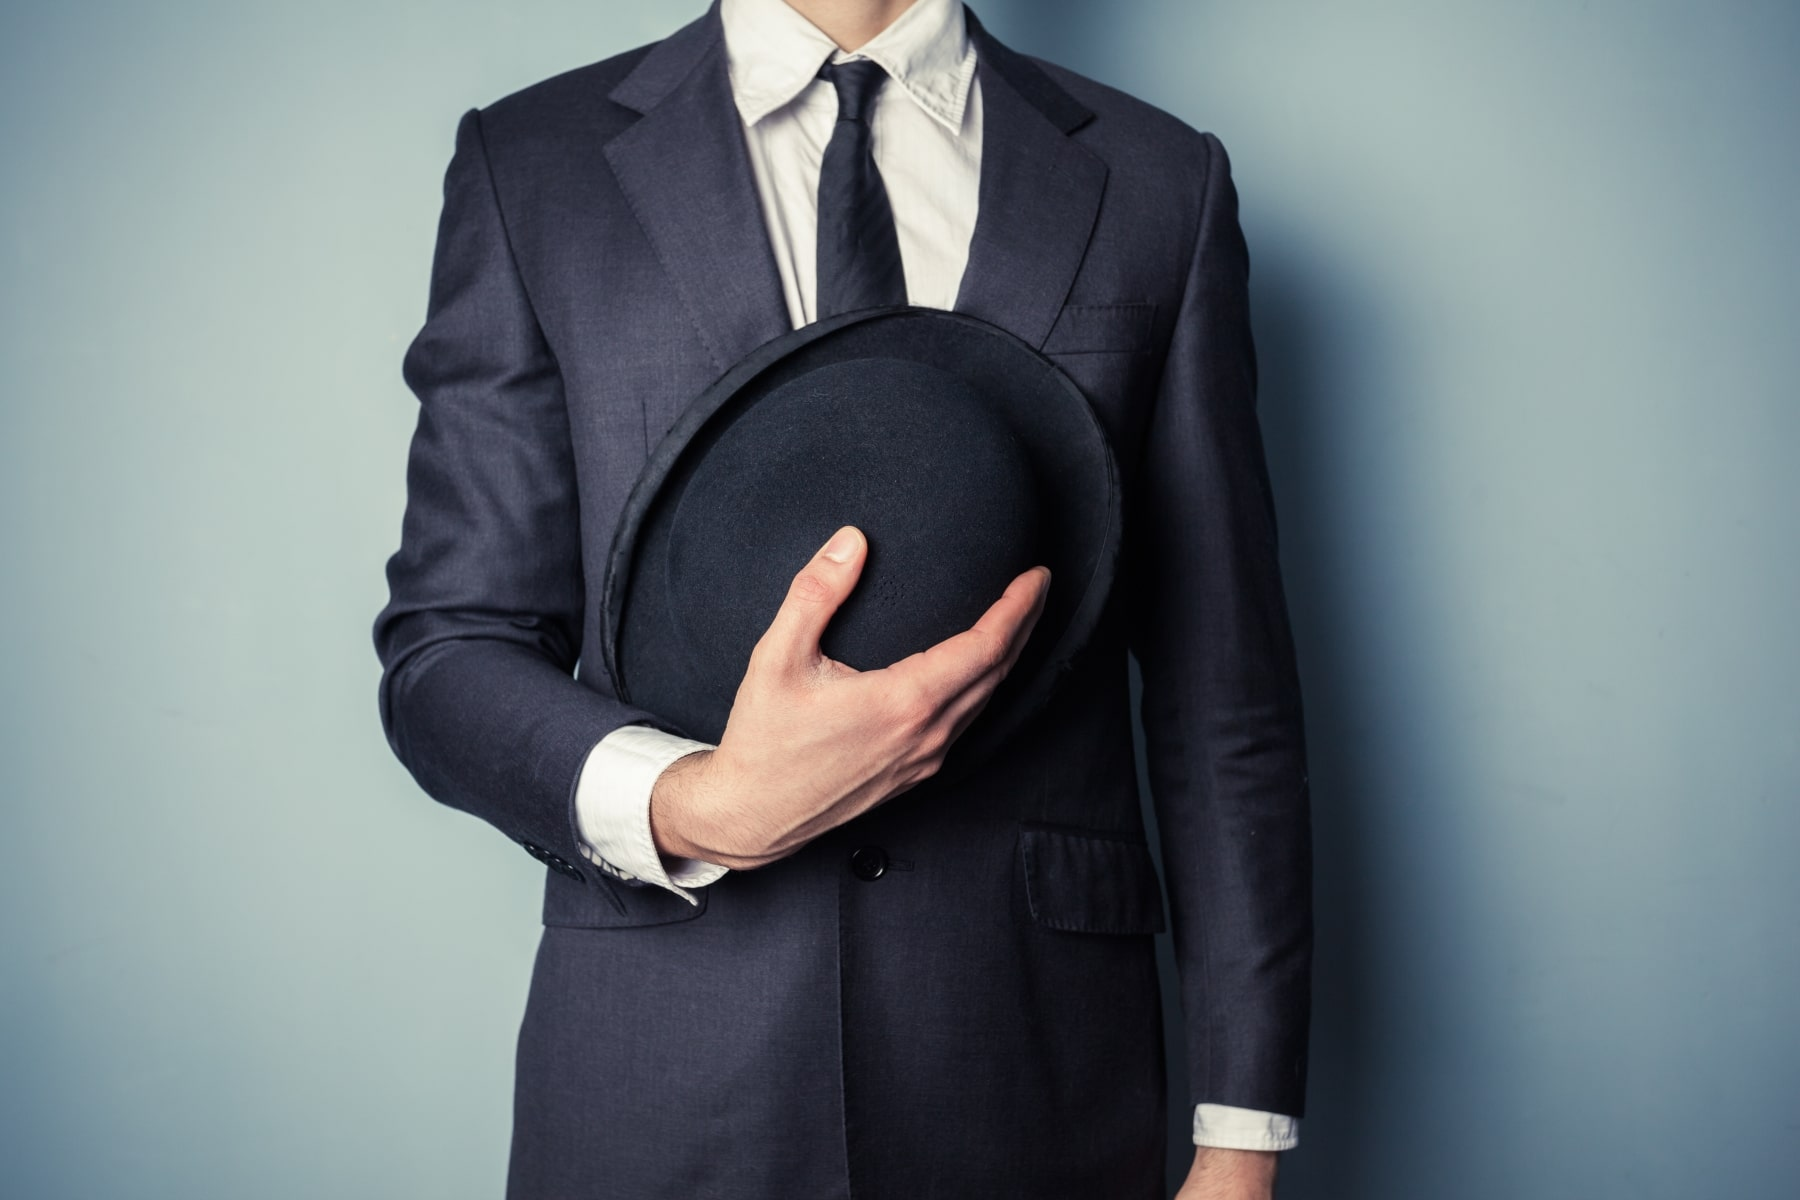 Young man suit holding a bowler hat